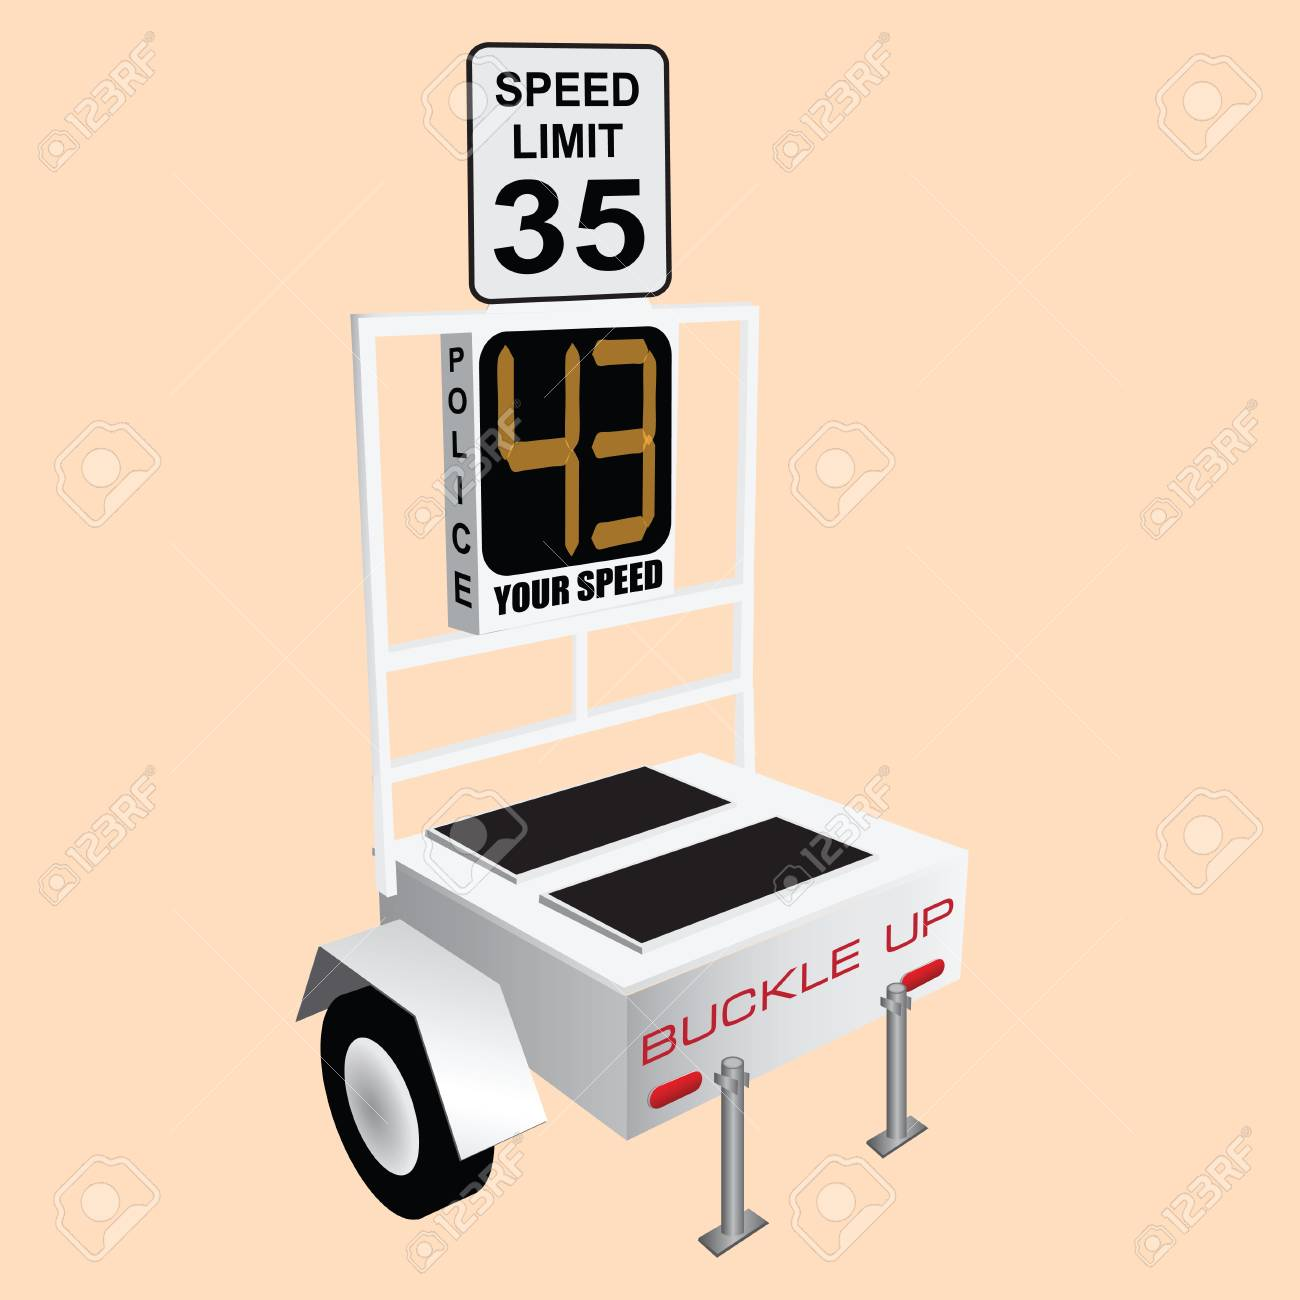 Device monitoring and speed control on the roads Stock Vector - 15039609